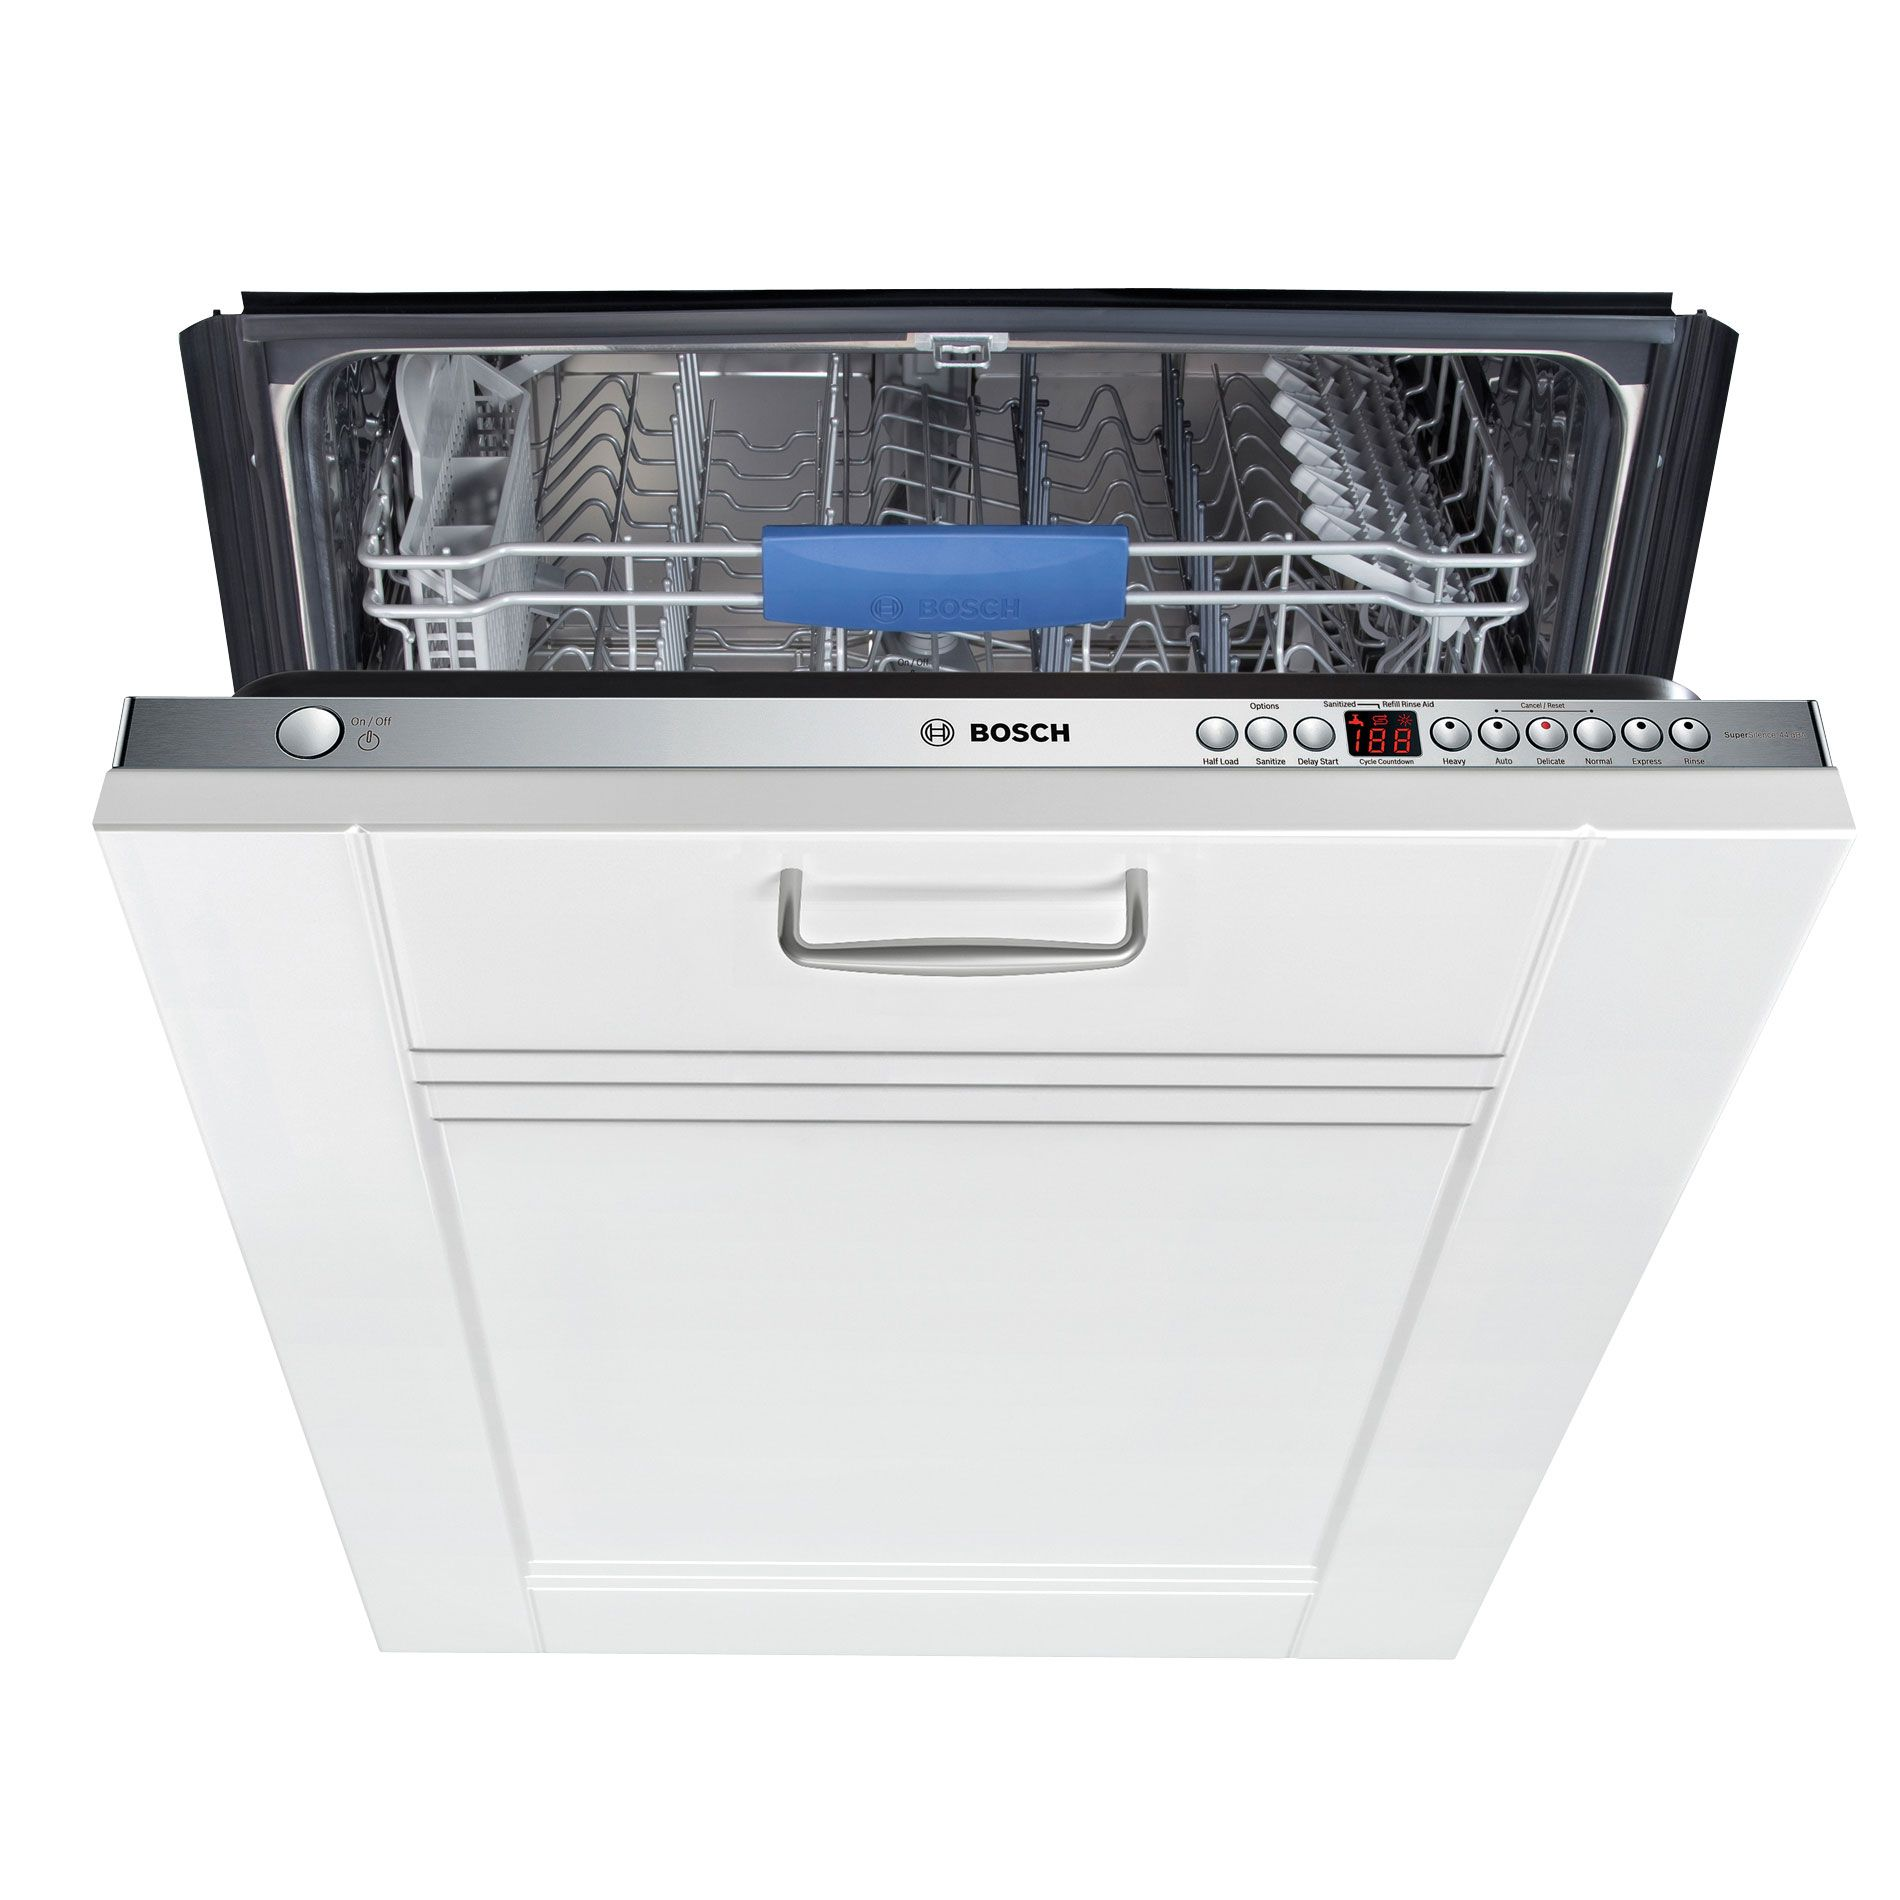 "Bosch 24"" Built-In Dishwasher Custom Panel"